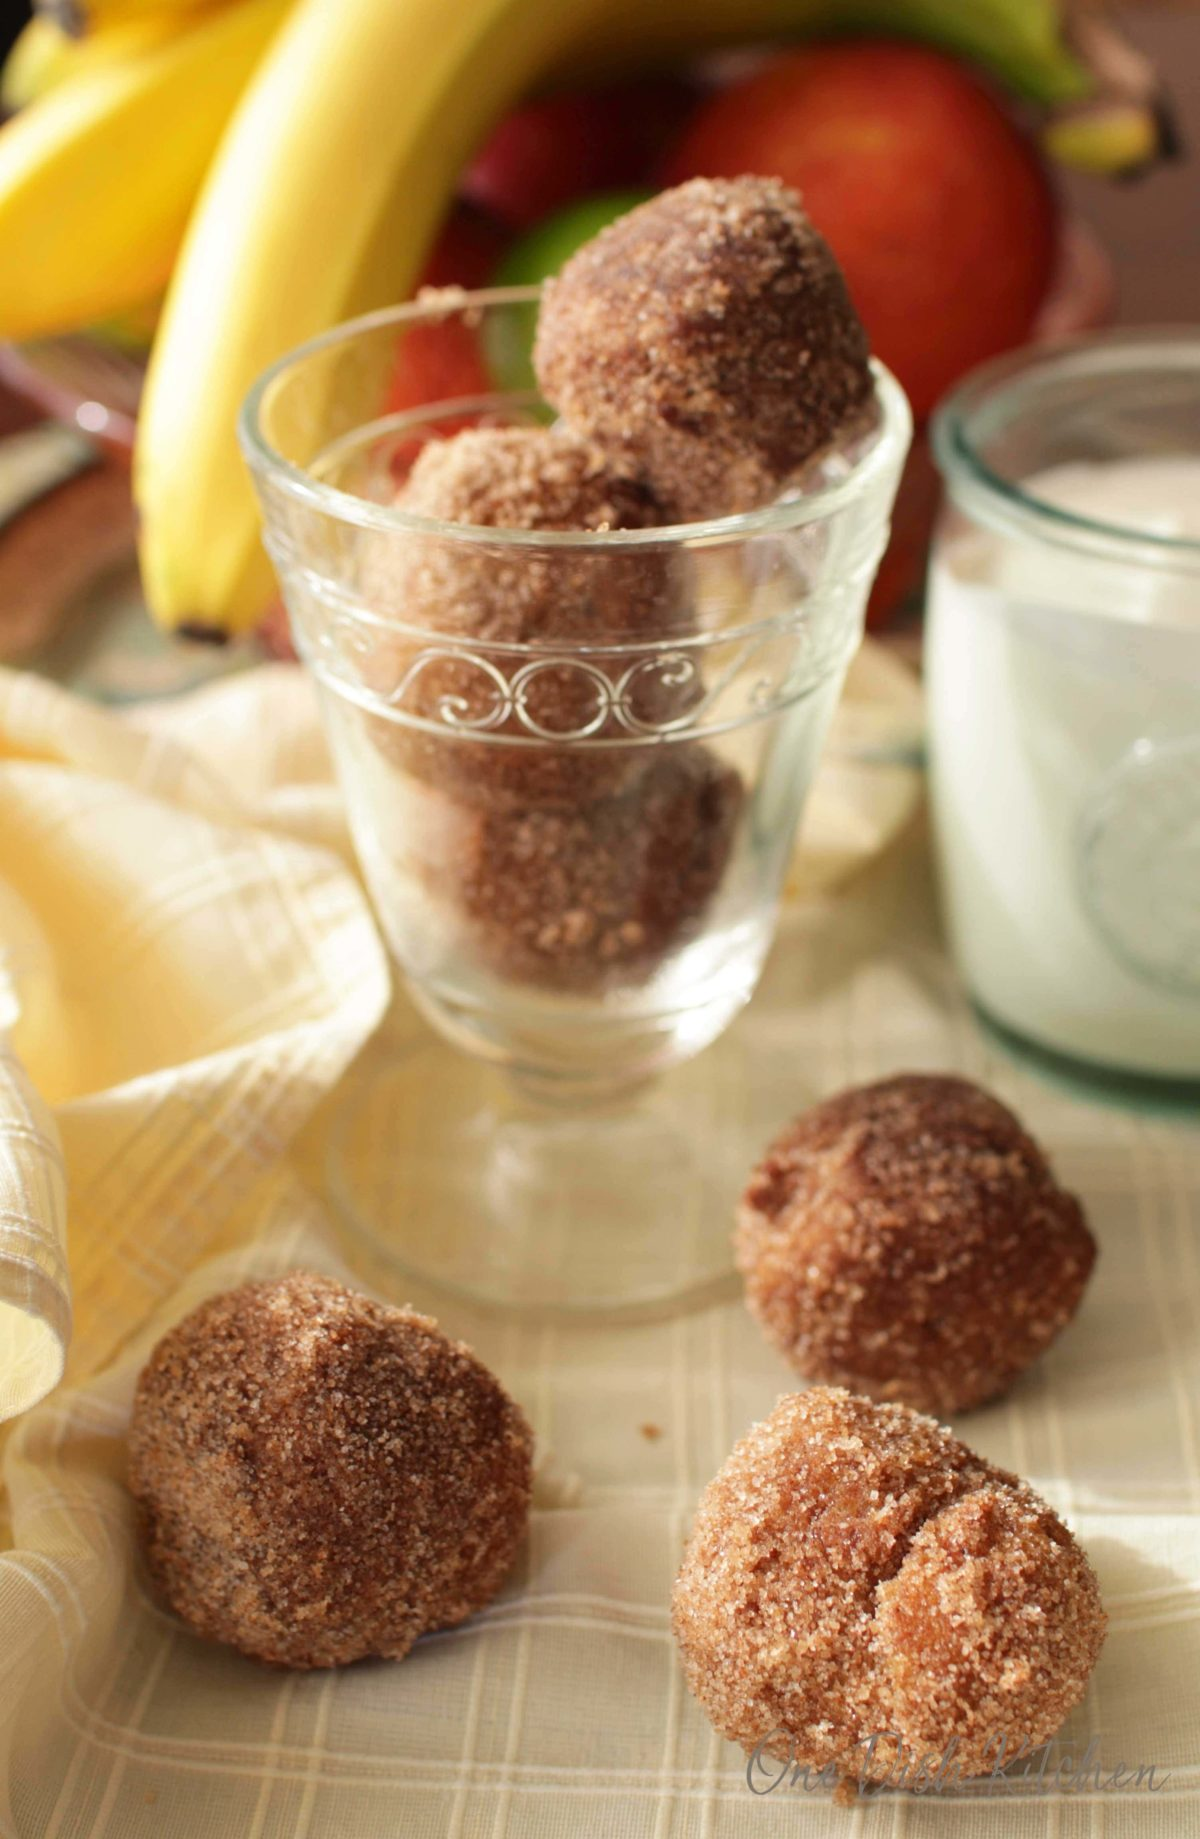 A dessert glass filled with three donut holes next to three donut holes scattered on a cloth napkin all next to a glass of milk